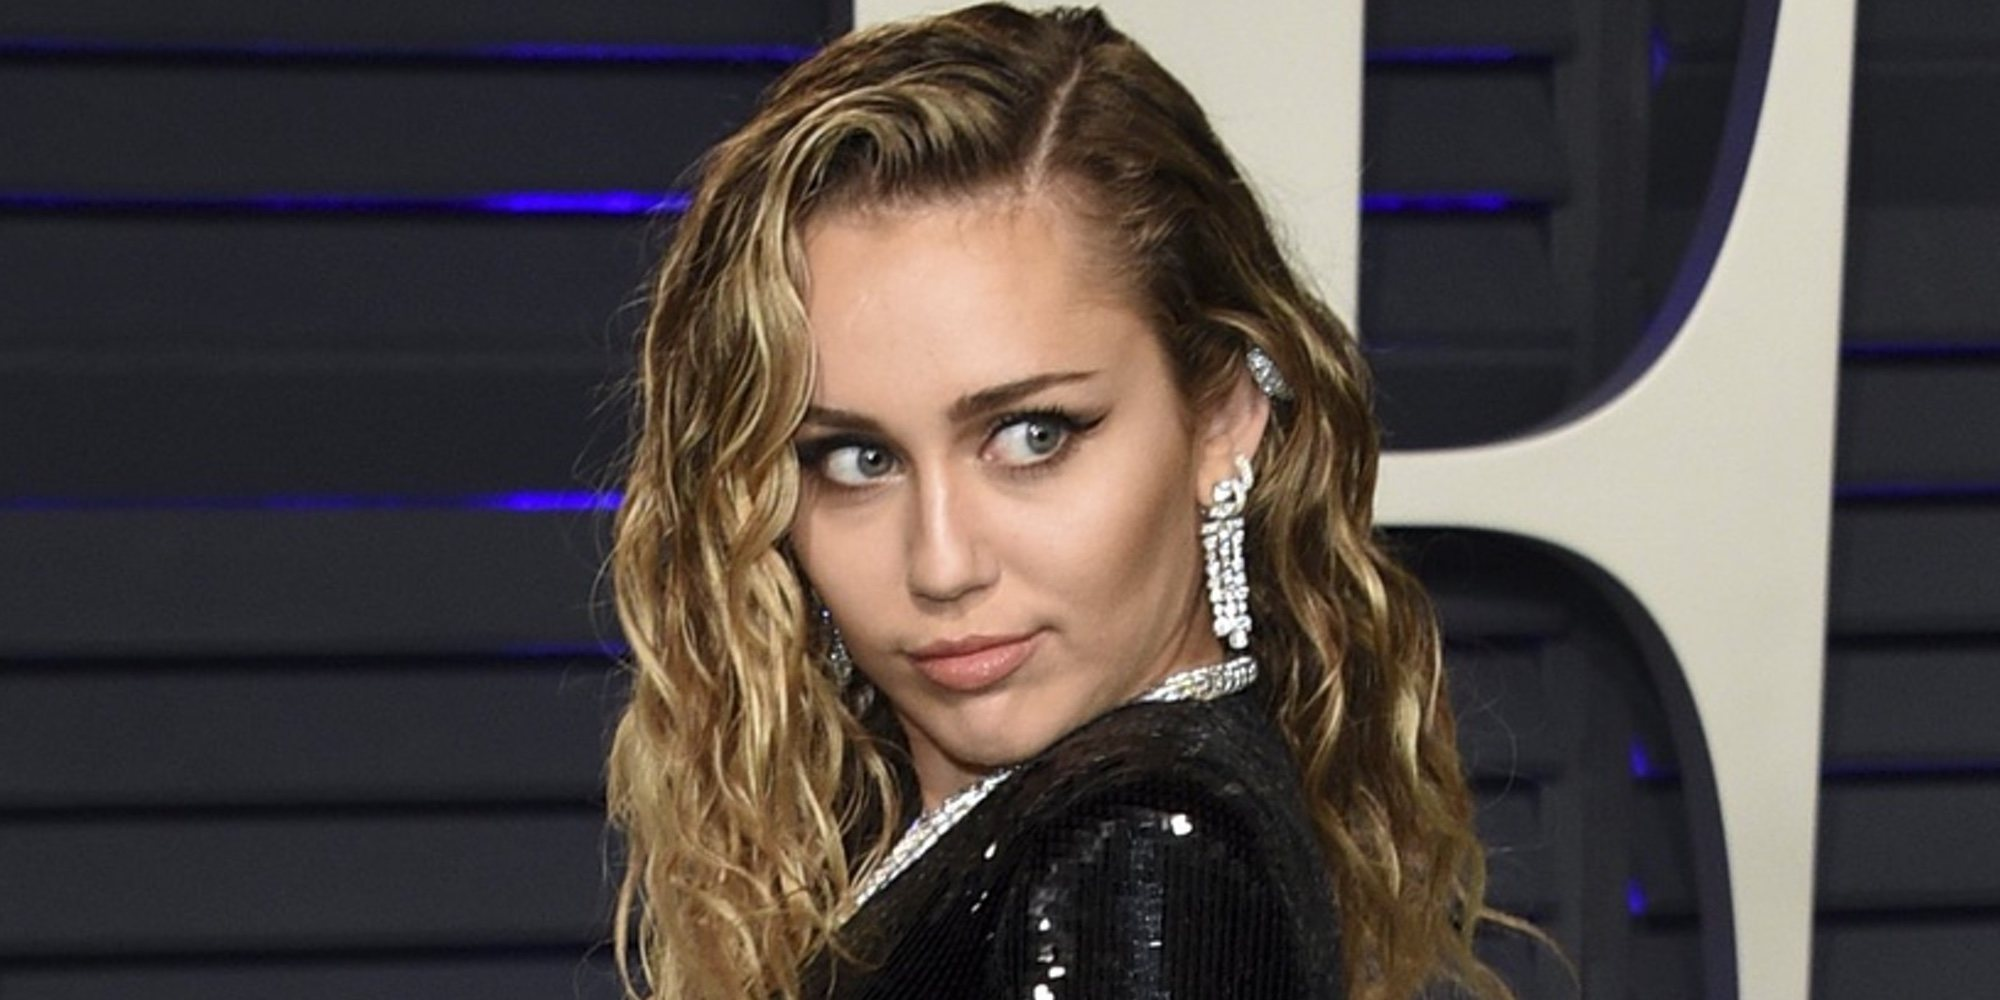 Miley Cyrus anuncia la fecha de salida de su disco 'She is coming'